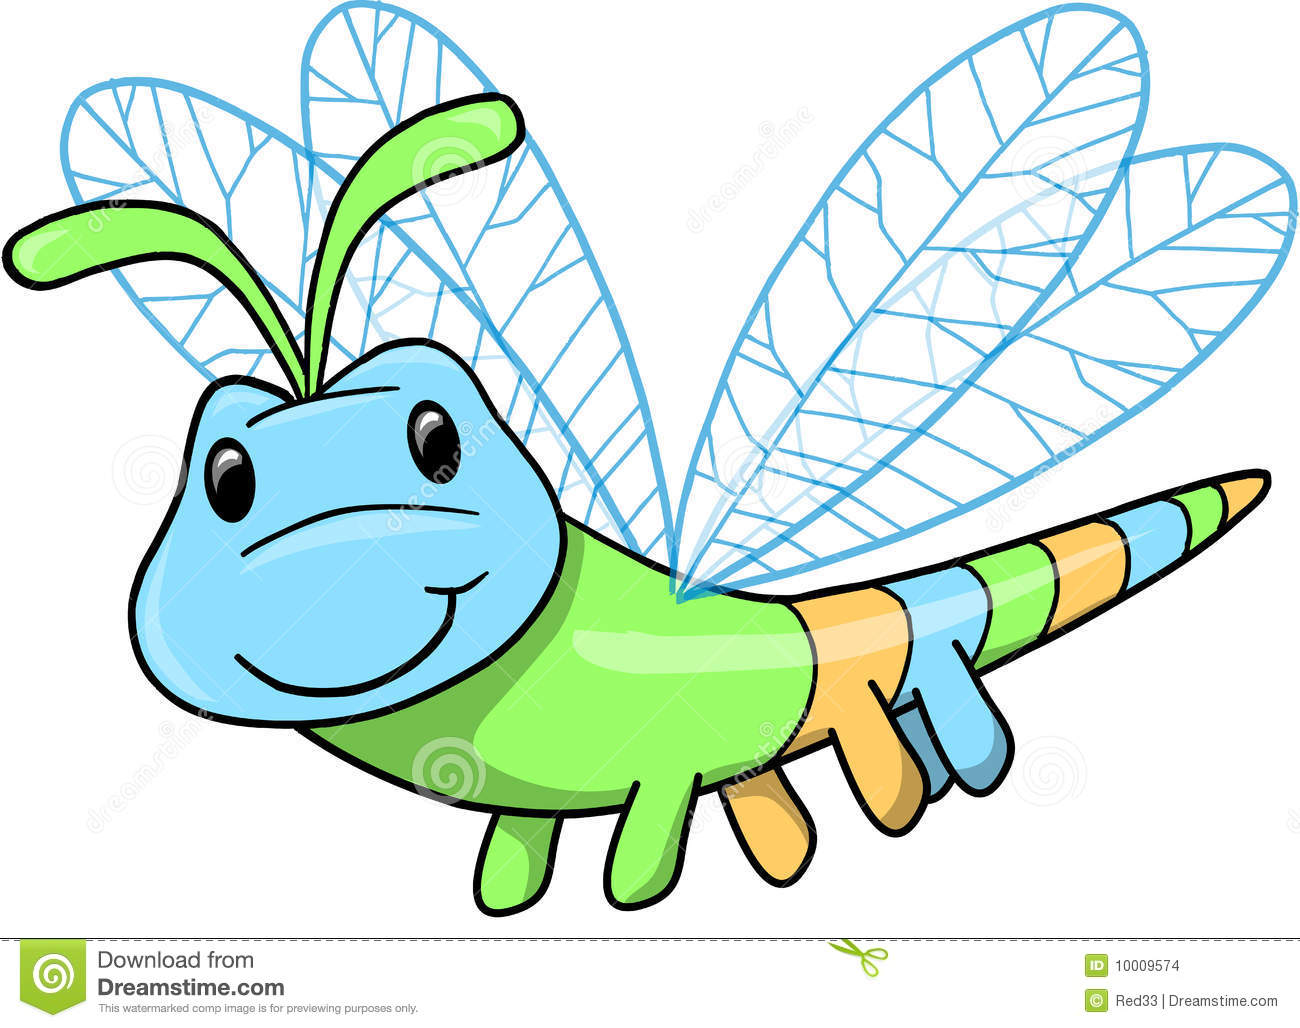 Cute Insect Vector .-Cute Insect Vector .-11